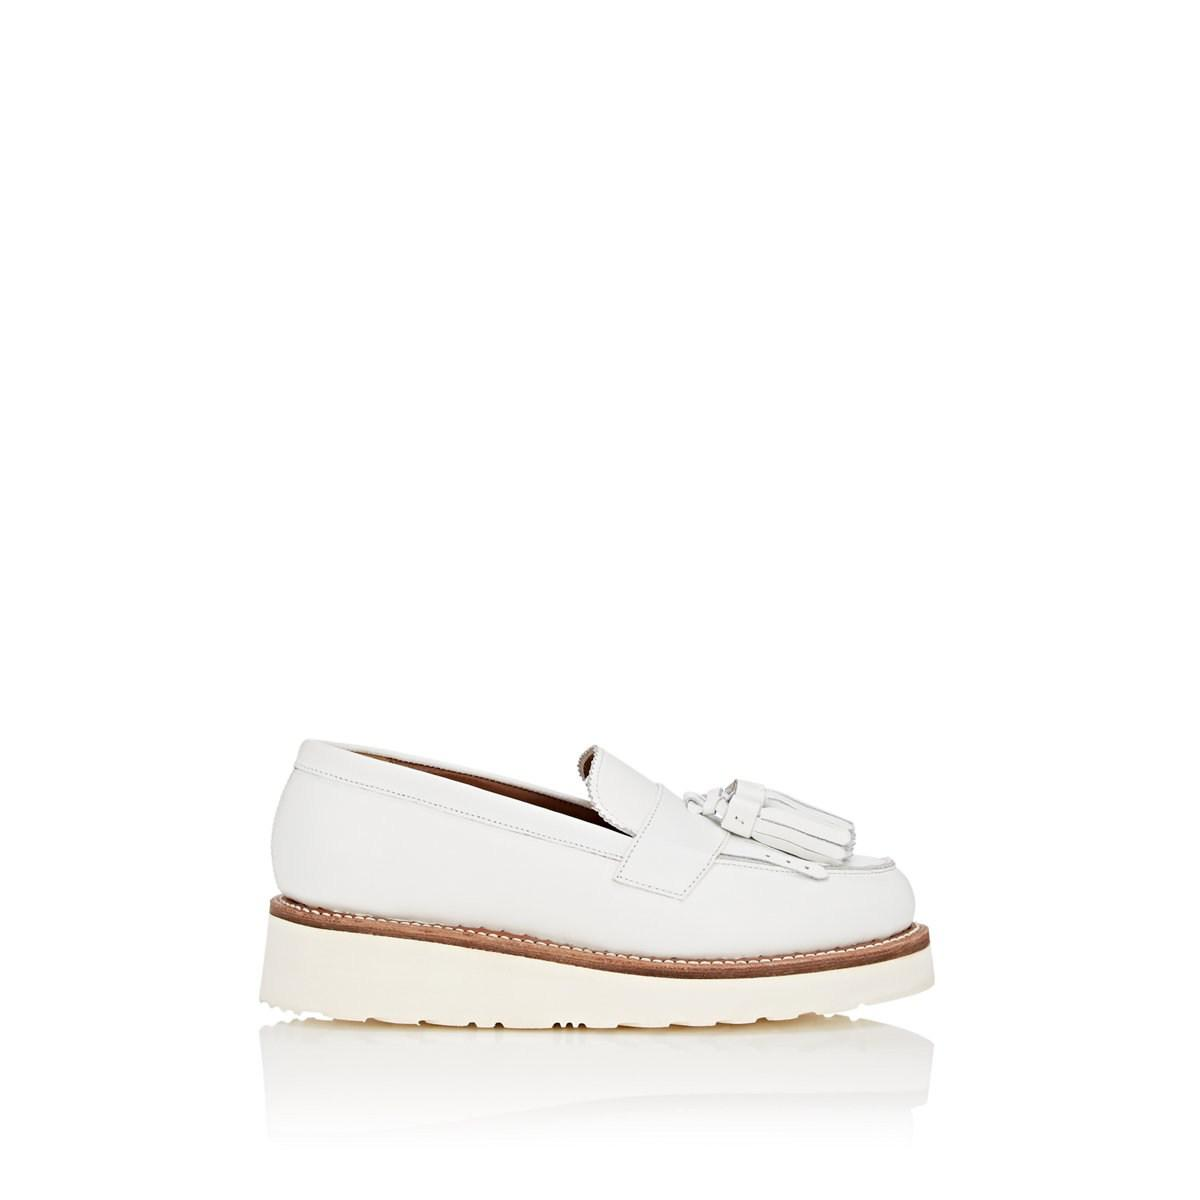 913002e3993 Lyst - Grenson Clara Leather Wedge Loafers in White